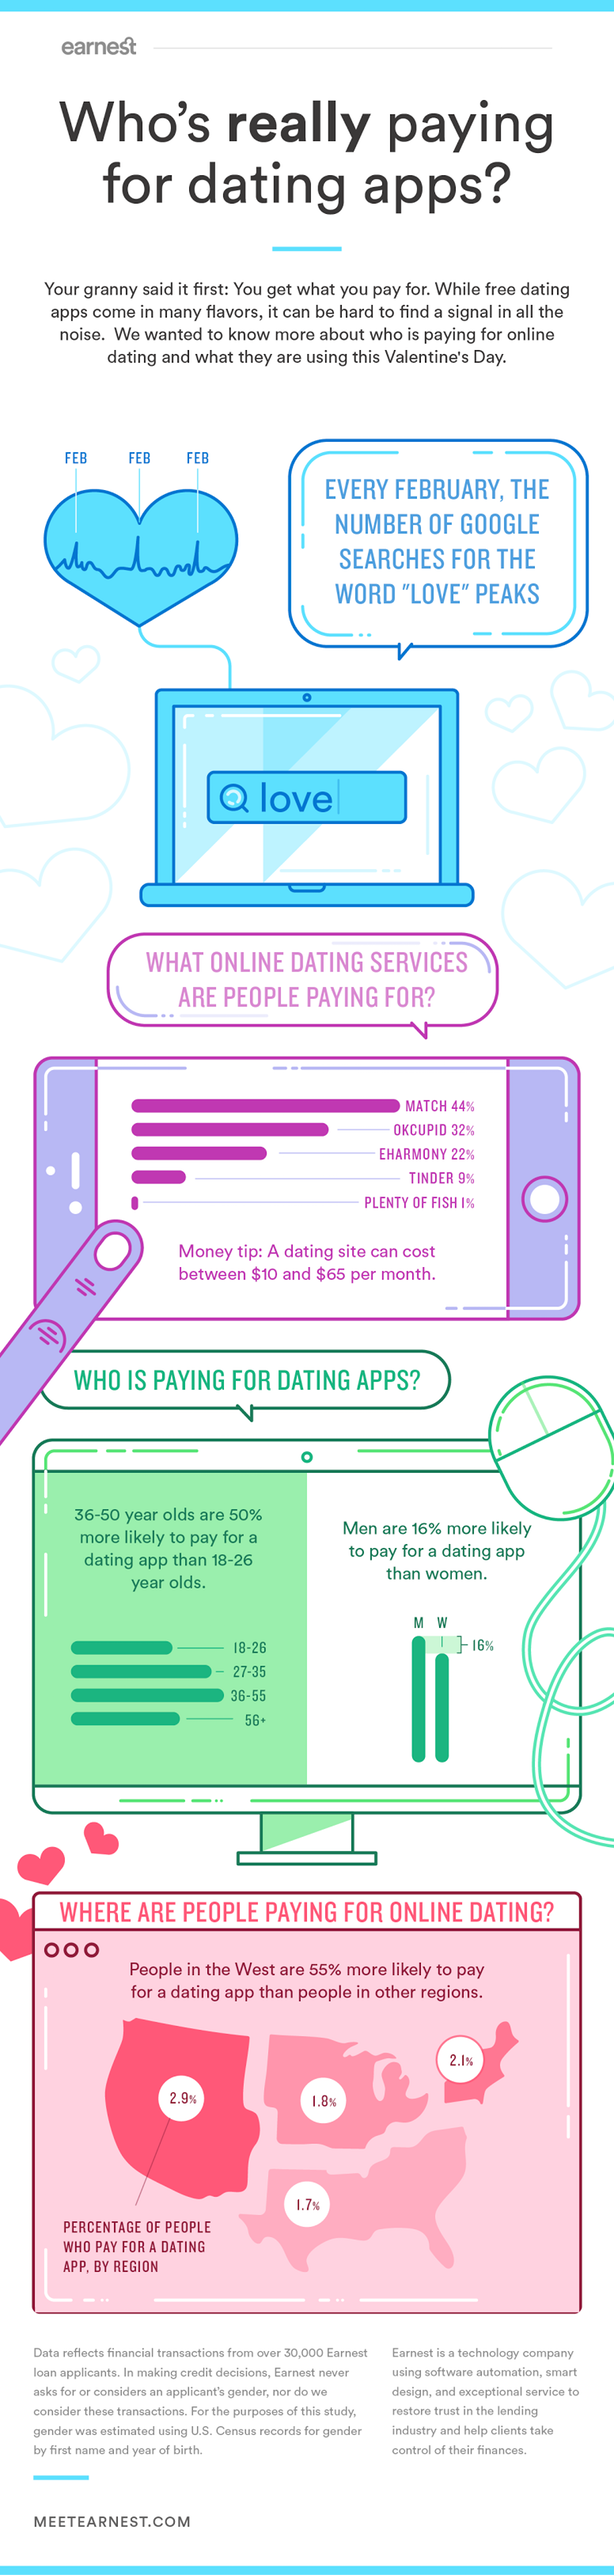 Pay for online dating apps?